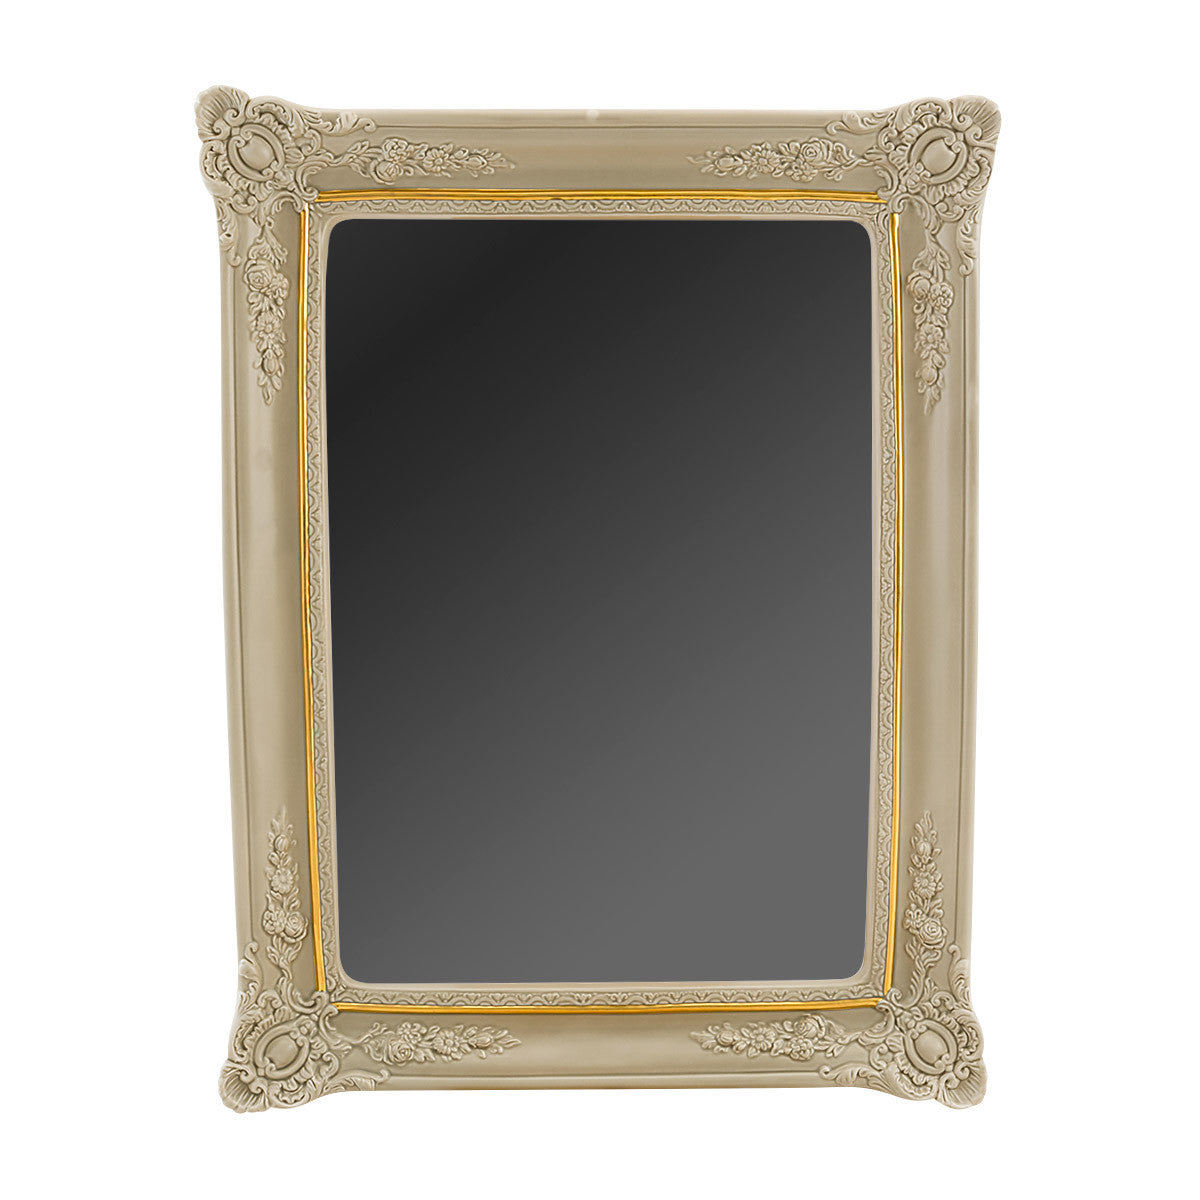 Gold grey mirror frame with reliefs italian ceramic porcelain